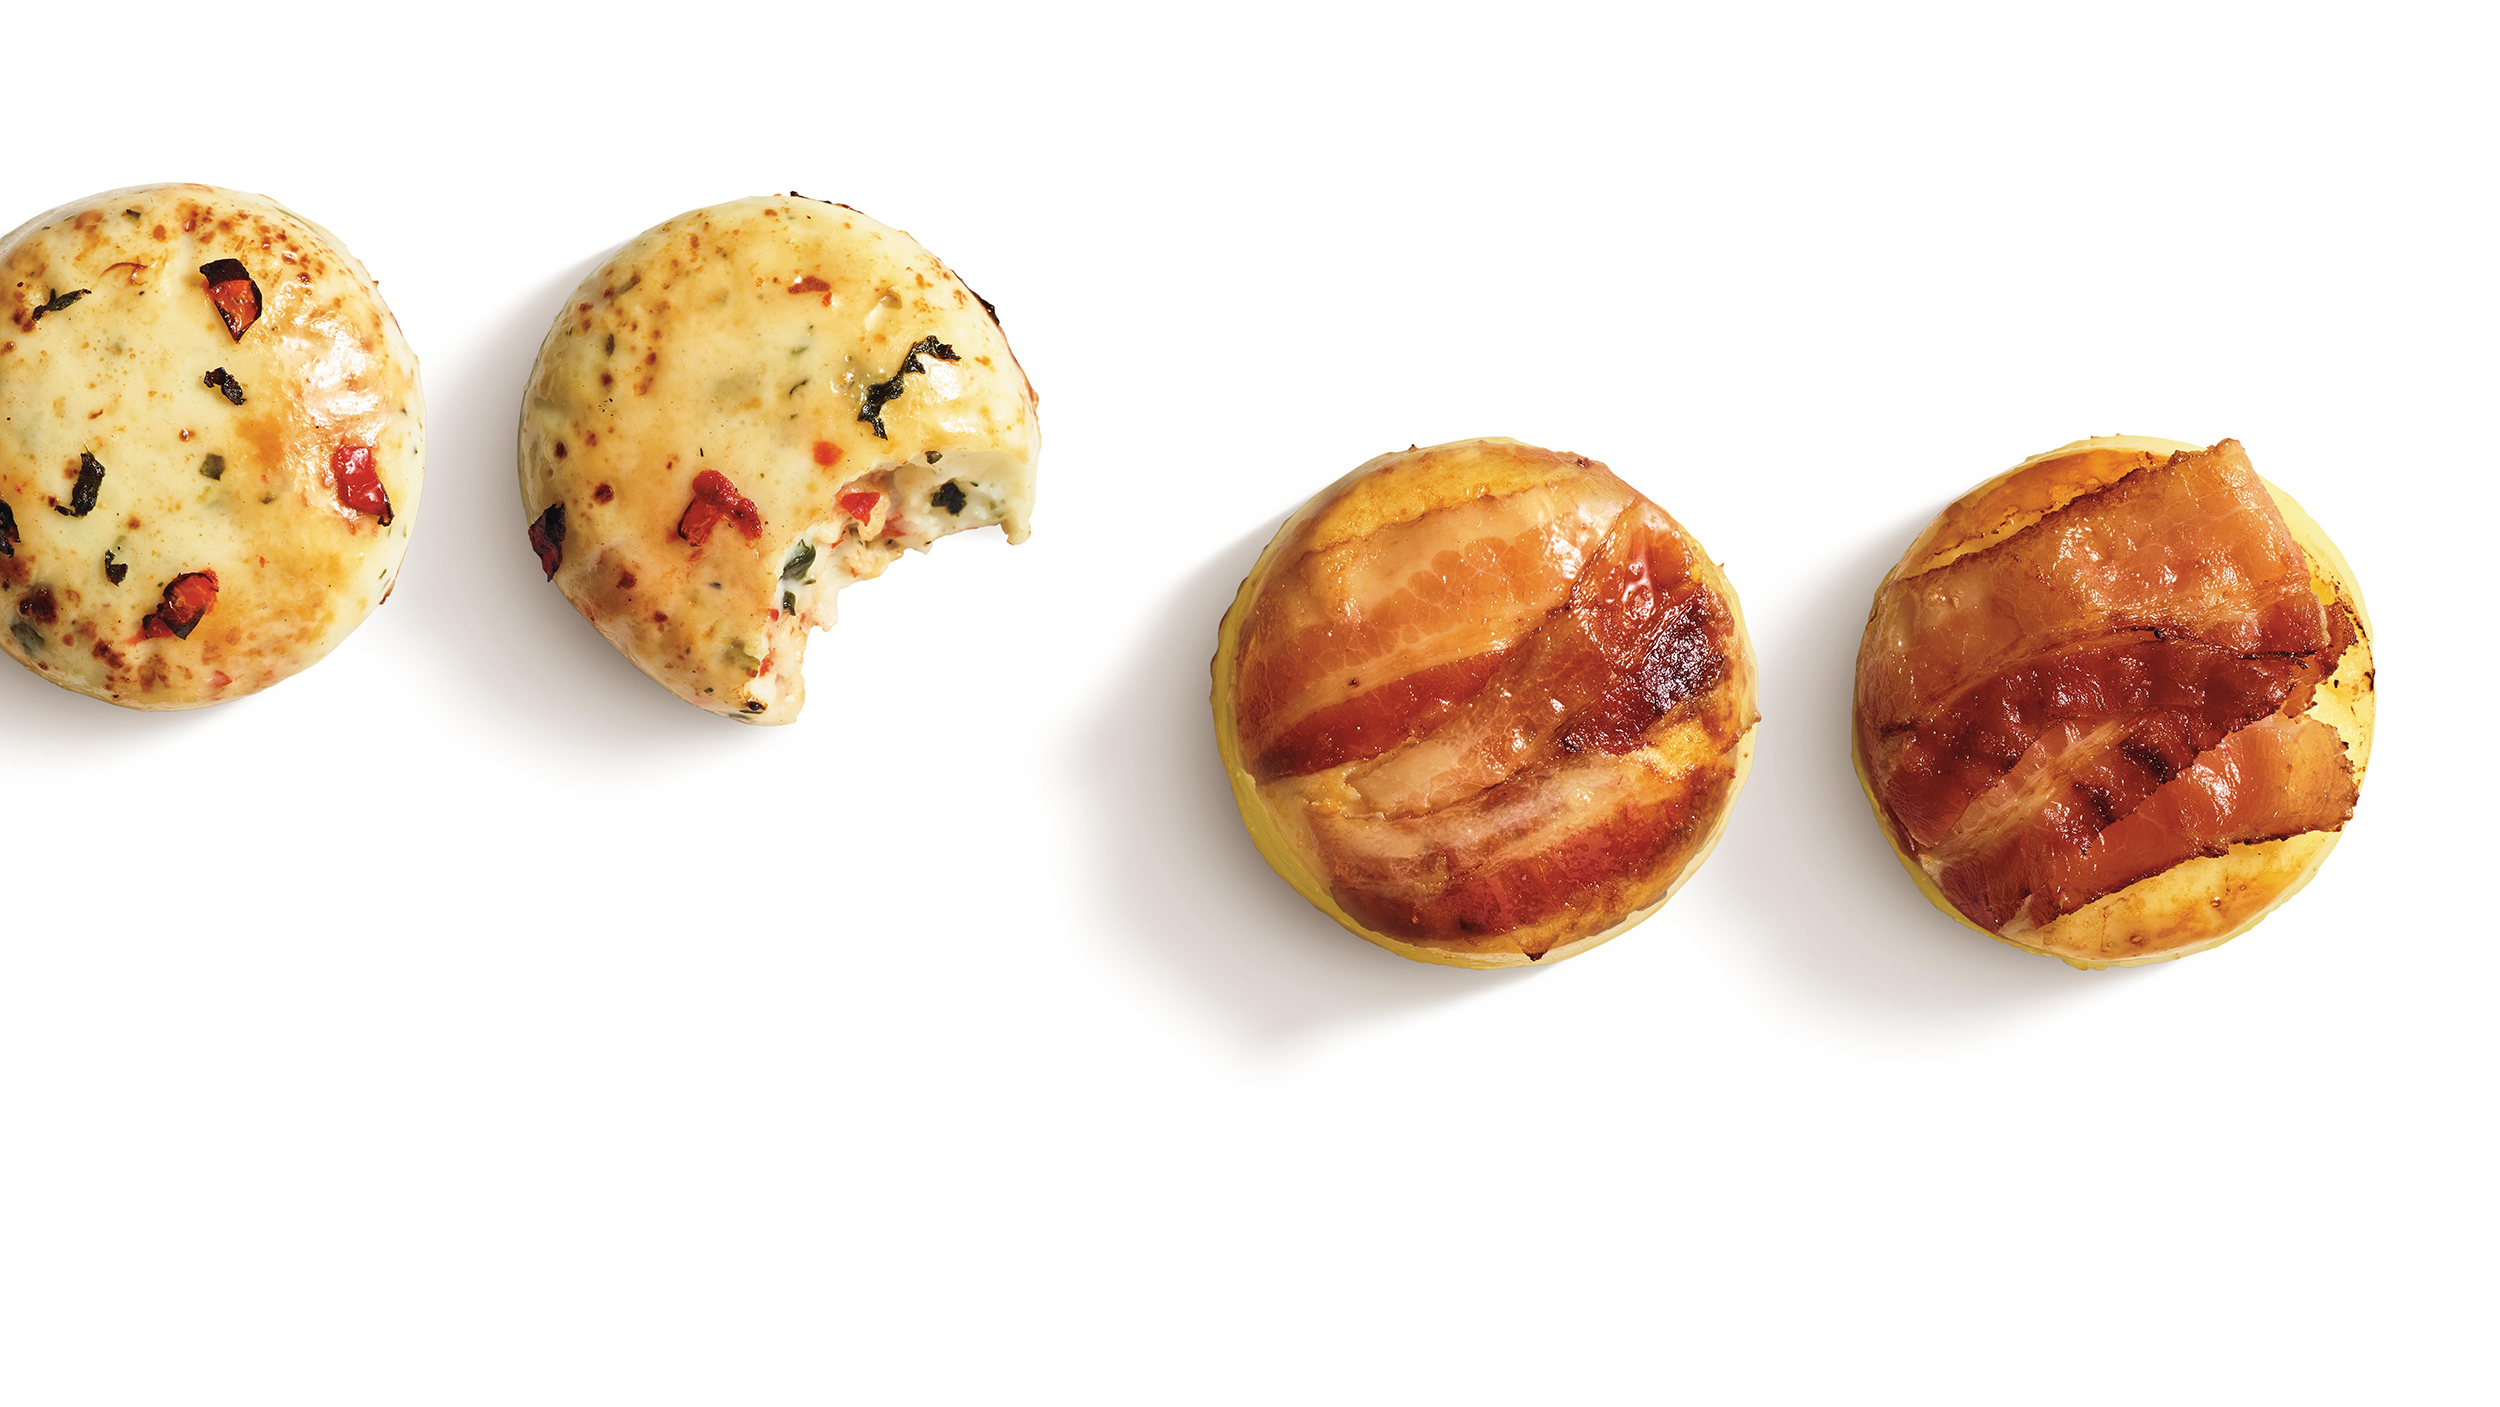 Starbucks New Sous Vide Egg Bites Are A Healthy Breakfast